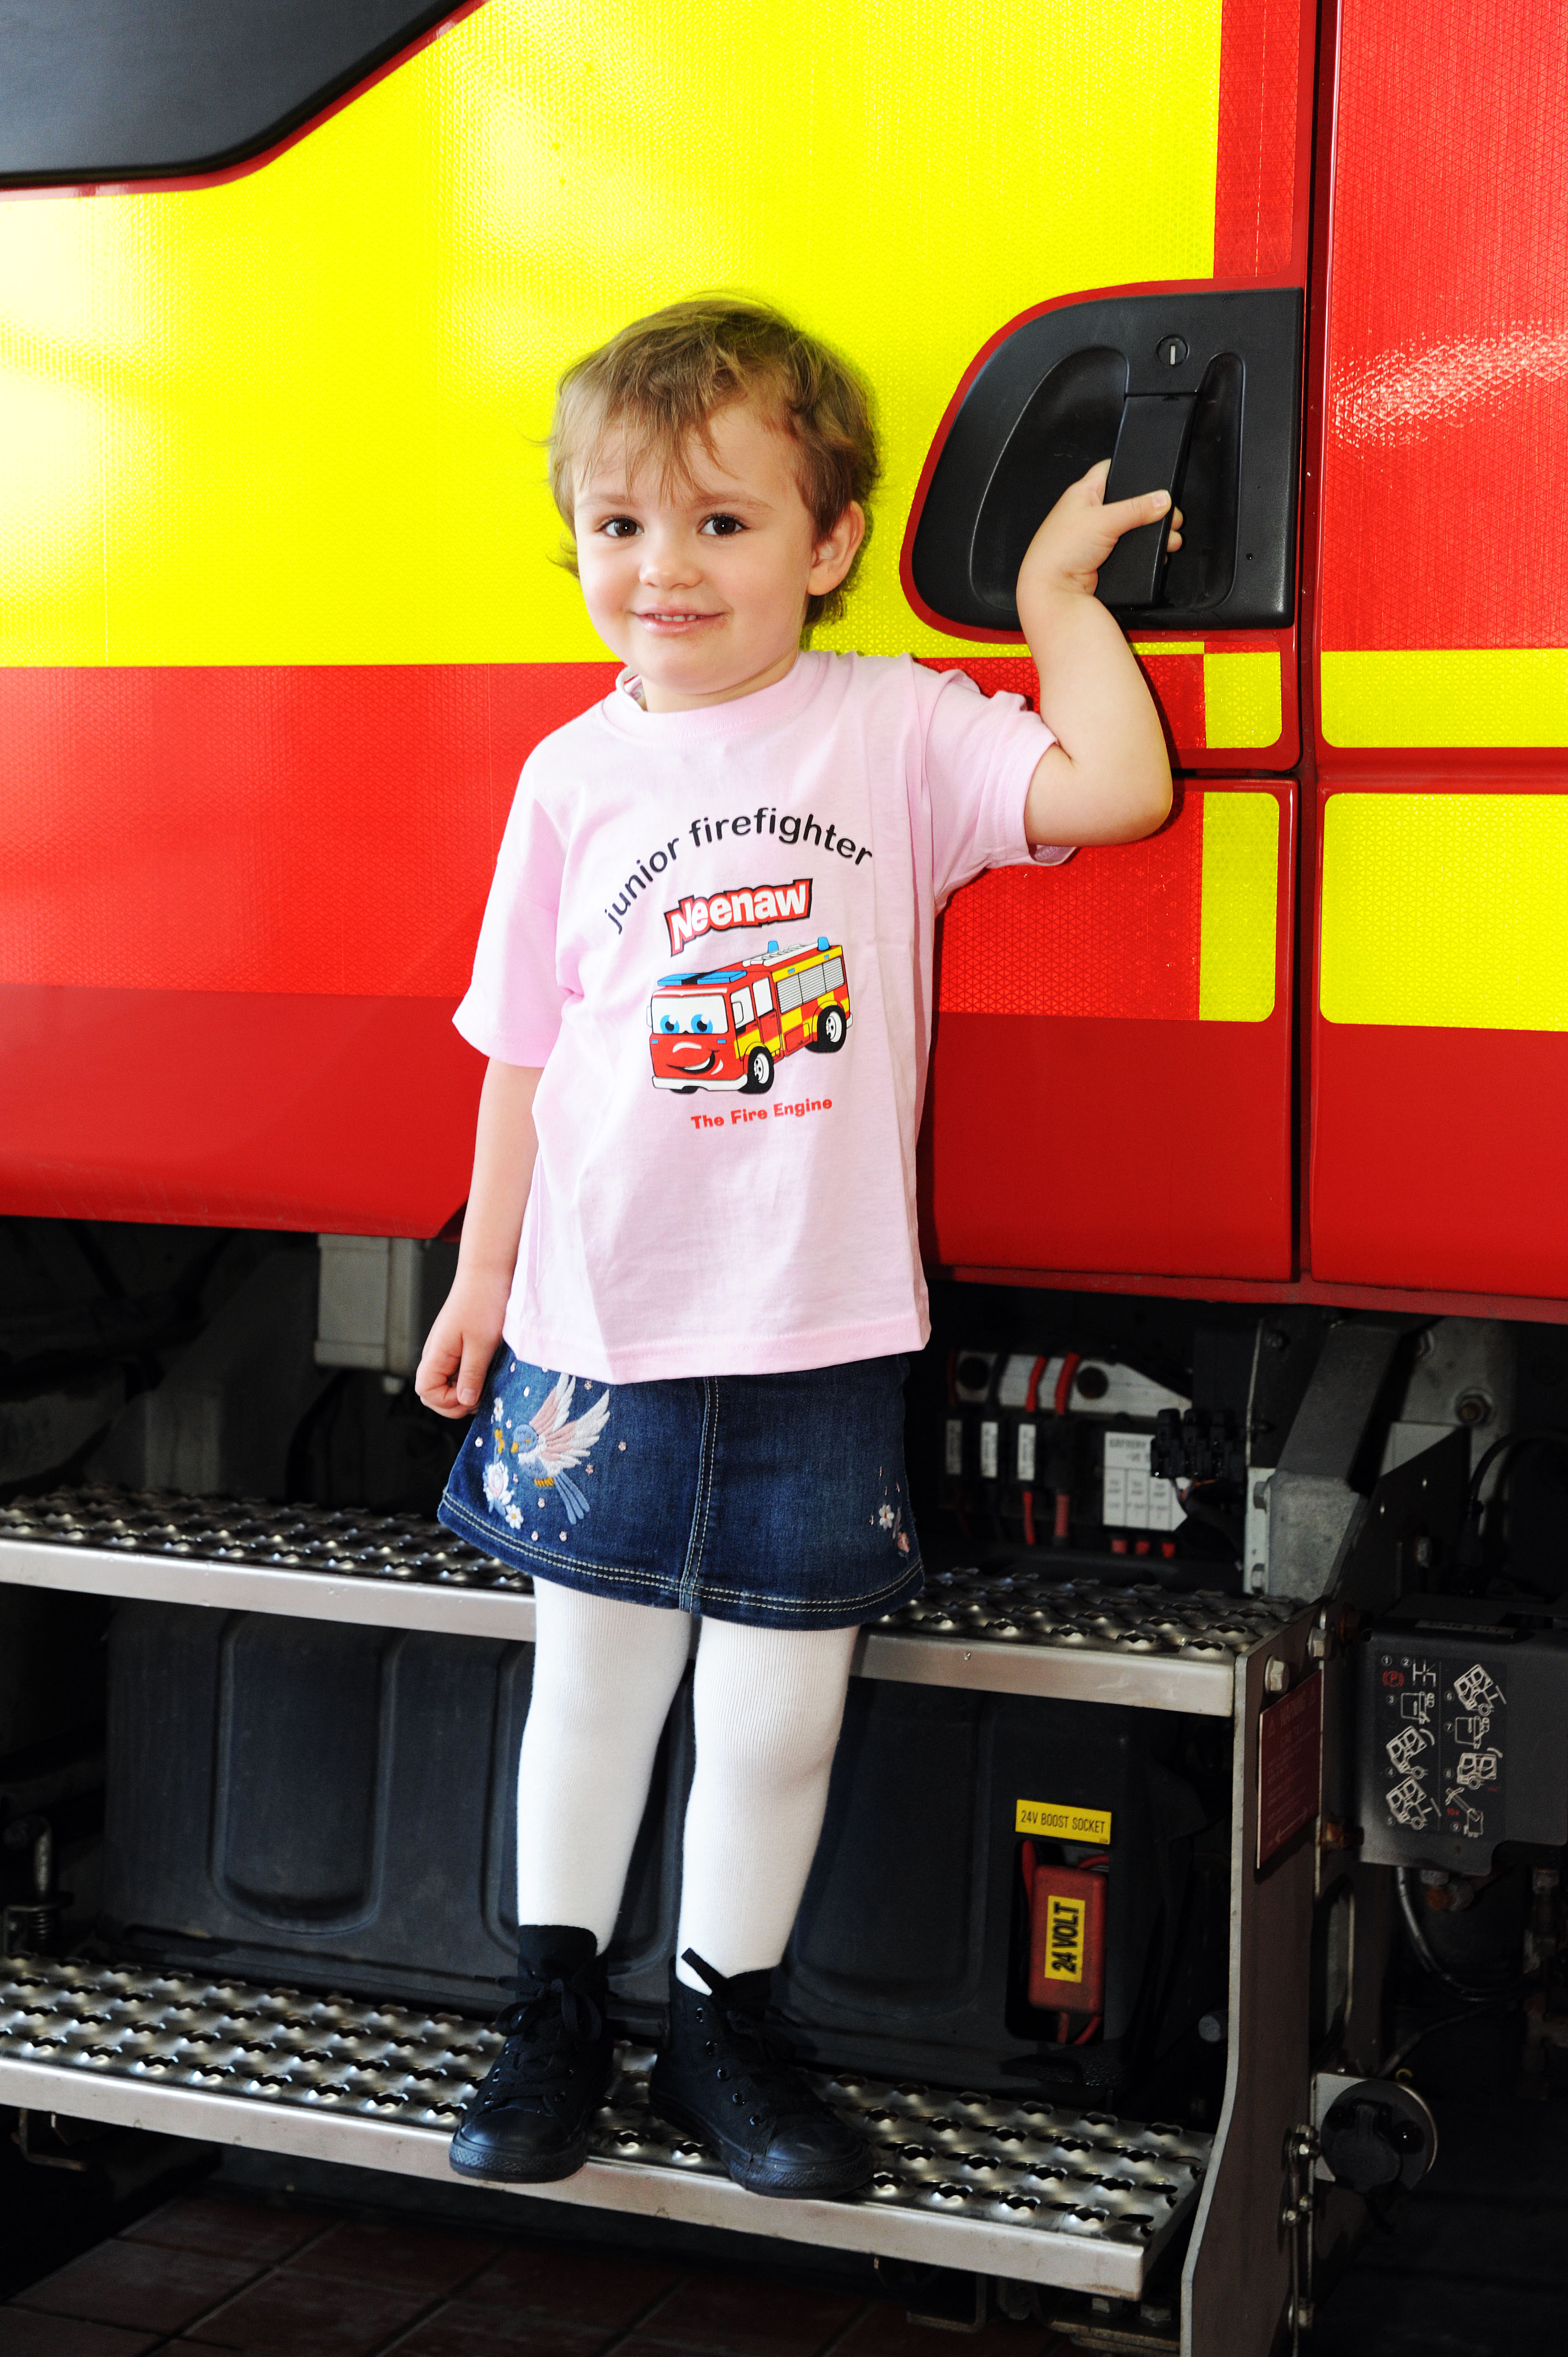 SFRS joins the search for Ava's hero